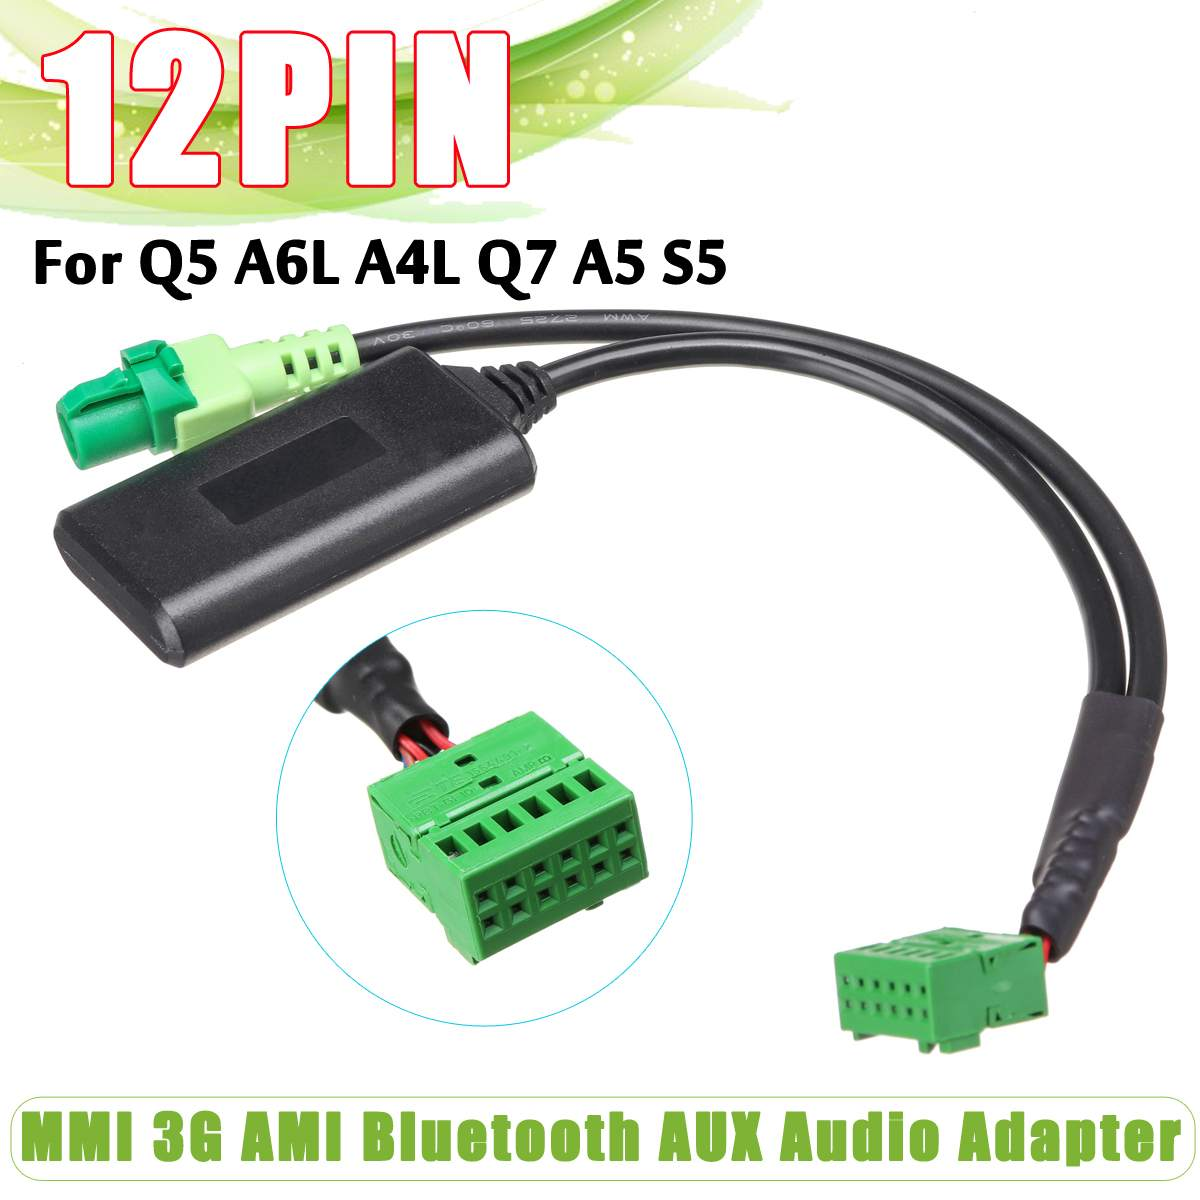 Car MMI 3G AMI Wireless Bluetooth AUX Audio Adapter Cable MMI Socket Interface Audio Input For Audi Q5 A6L A4L Q7 A5 S5 For VW